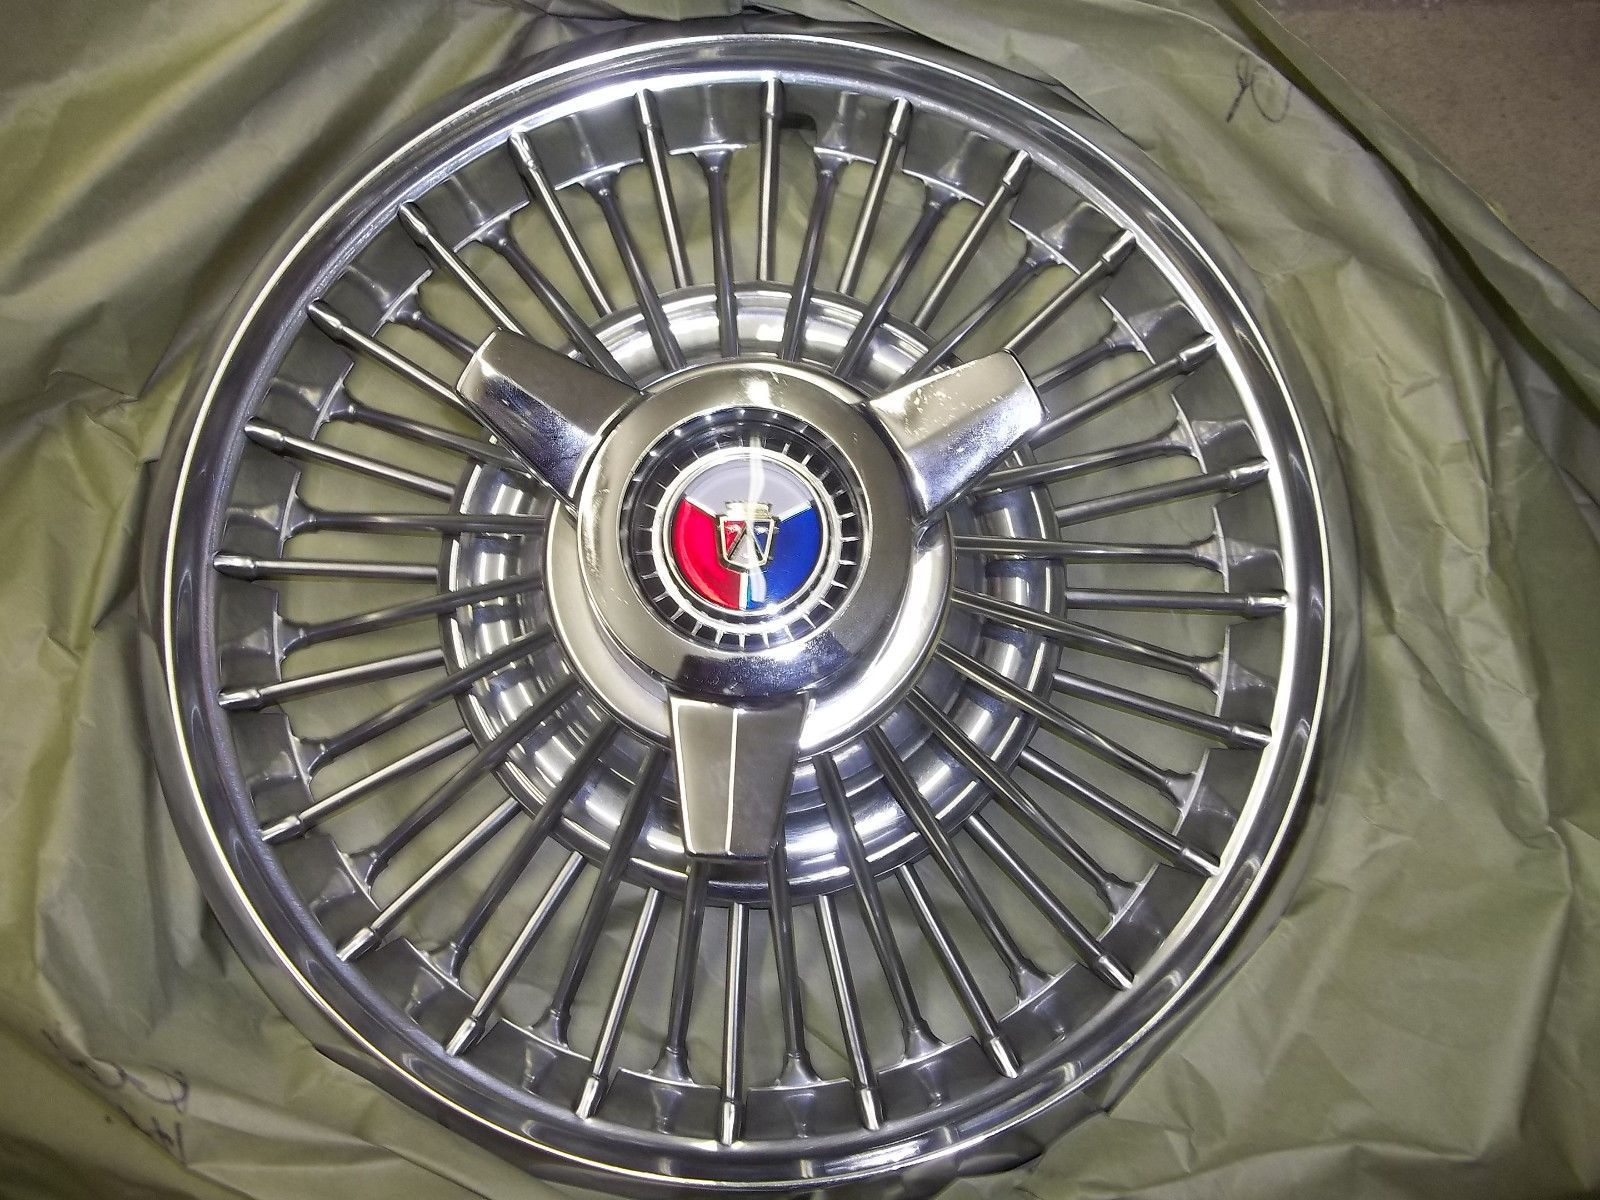 1964 Galaxie Or Mustang Wire Wheel Spinner Hubcaps New Original